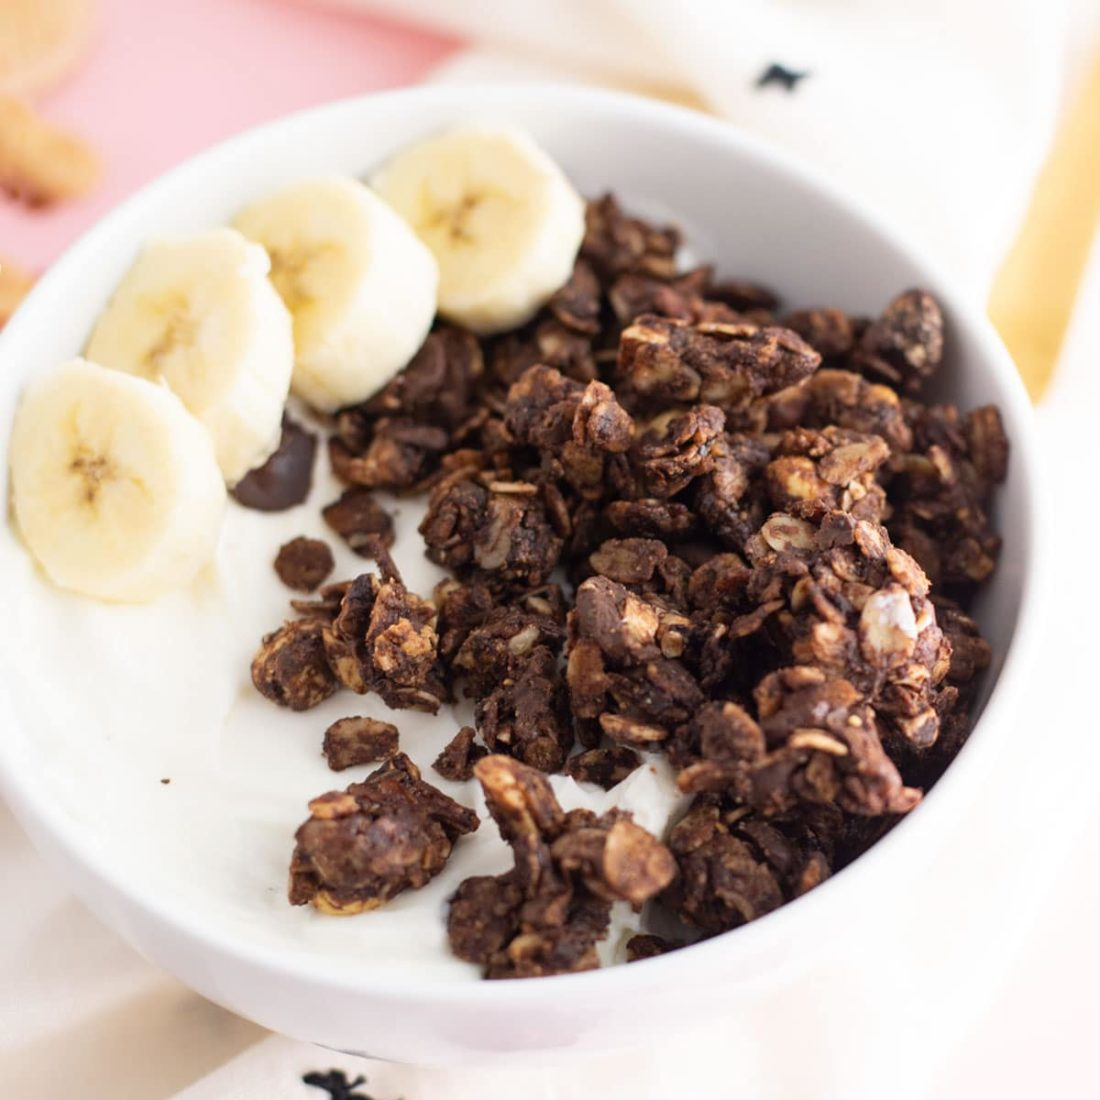 chocolate peanut butter granola in bowl with almond milk and banana slices